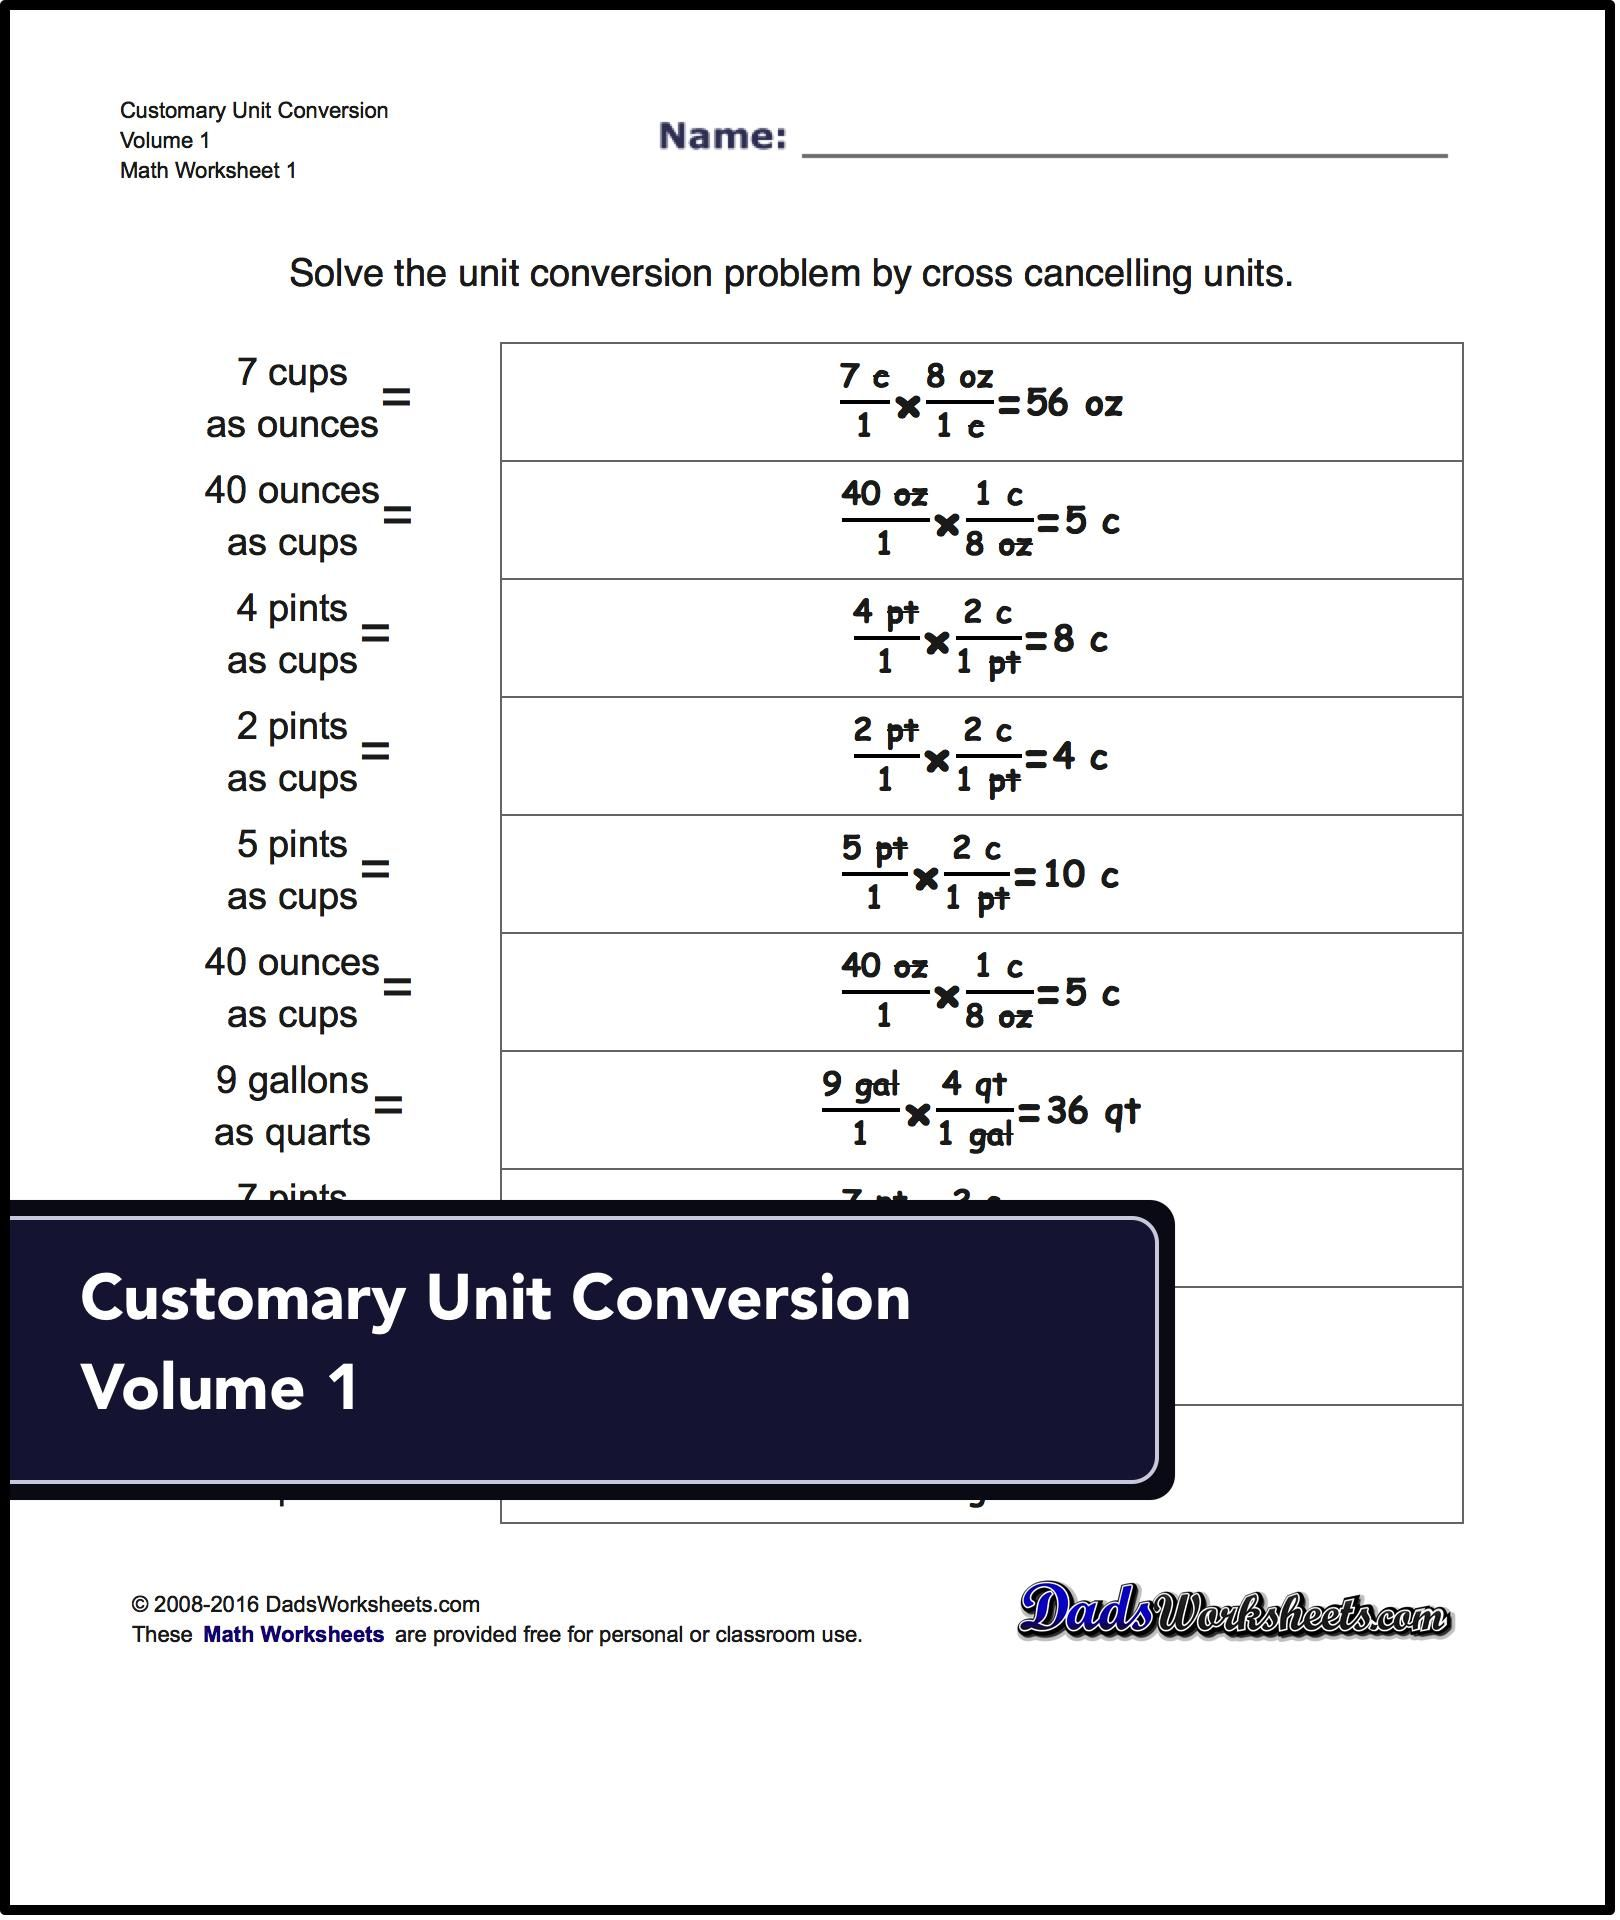 unit conversion worksheets for converting customary volume units including ounces pints. Black Bedroom Furniture Sets. Home Design Ideas